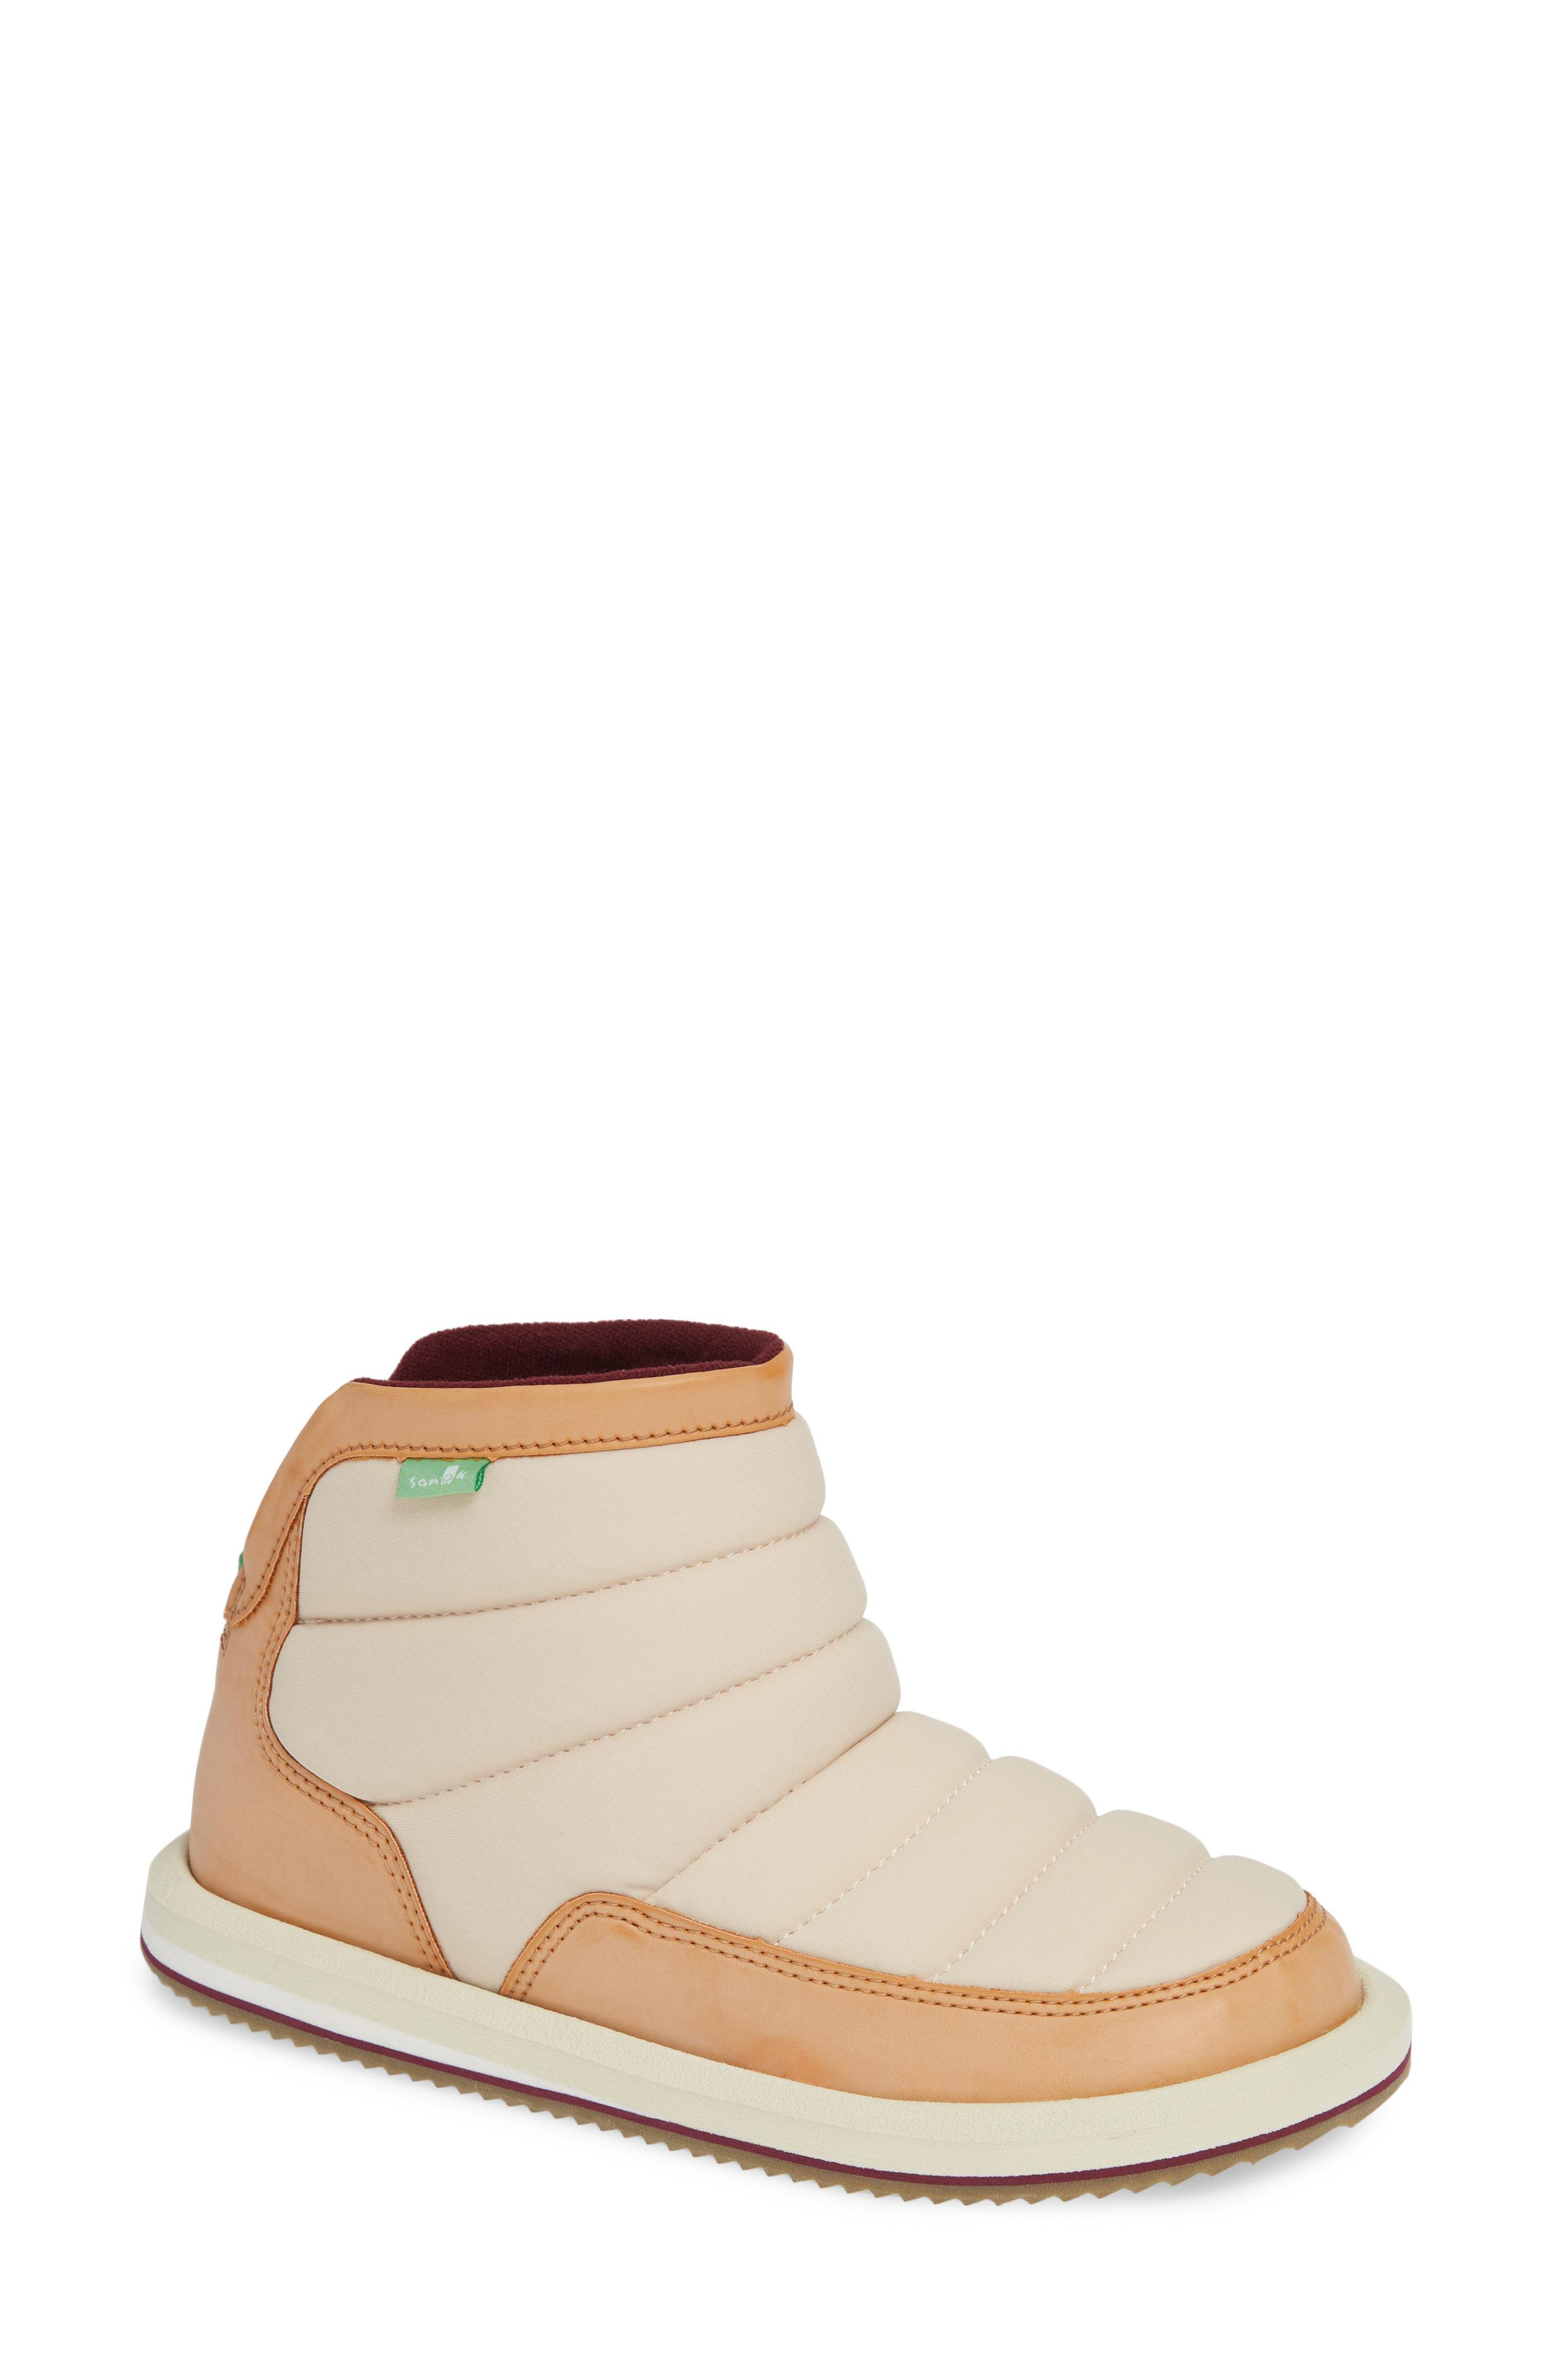 13a544702546 Lyst - Sanuk Puff N Chill Boot in White